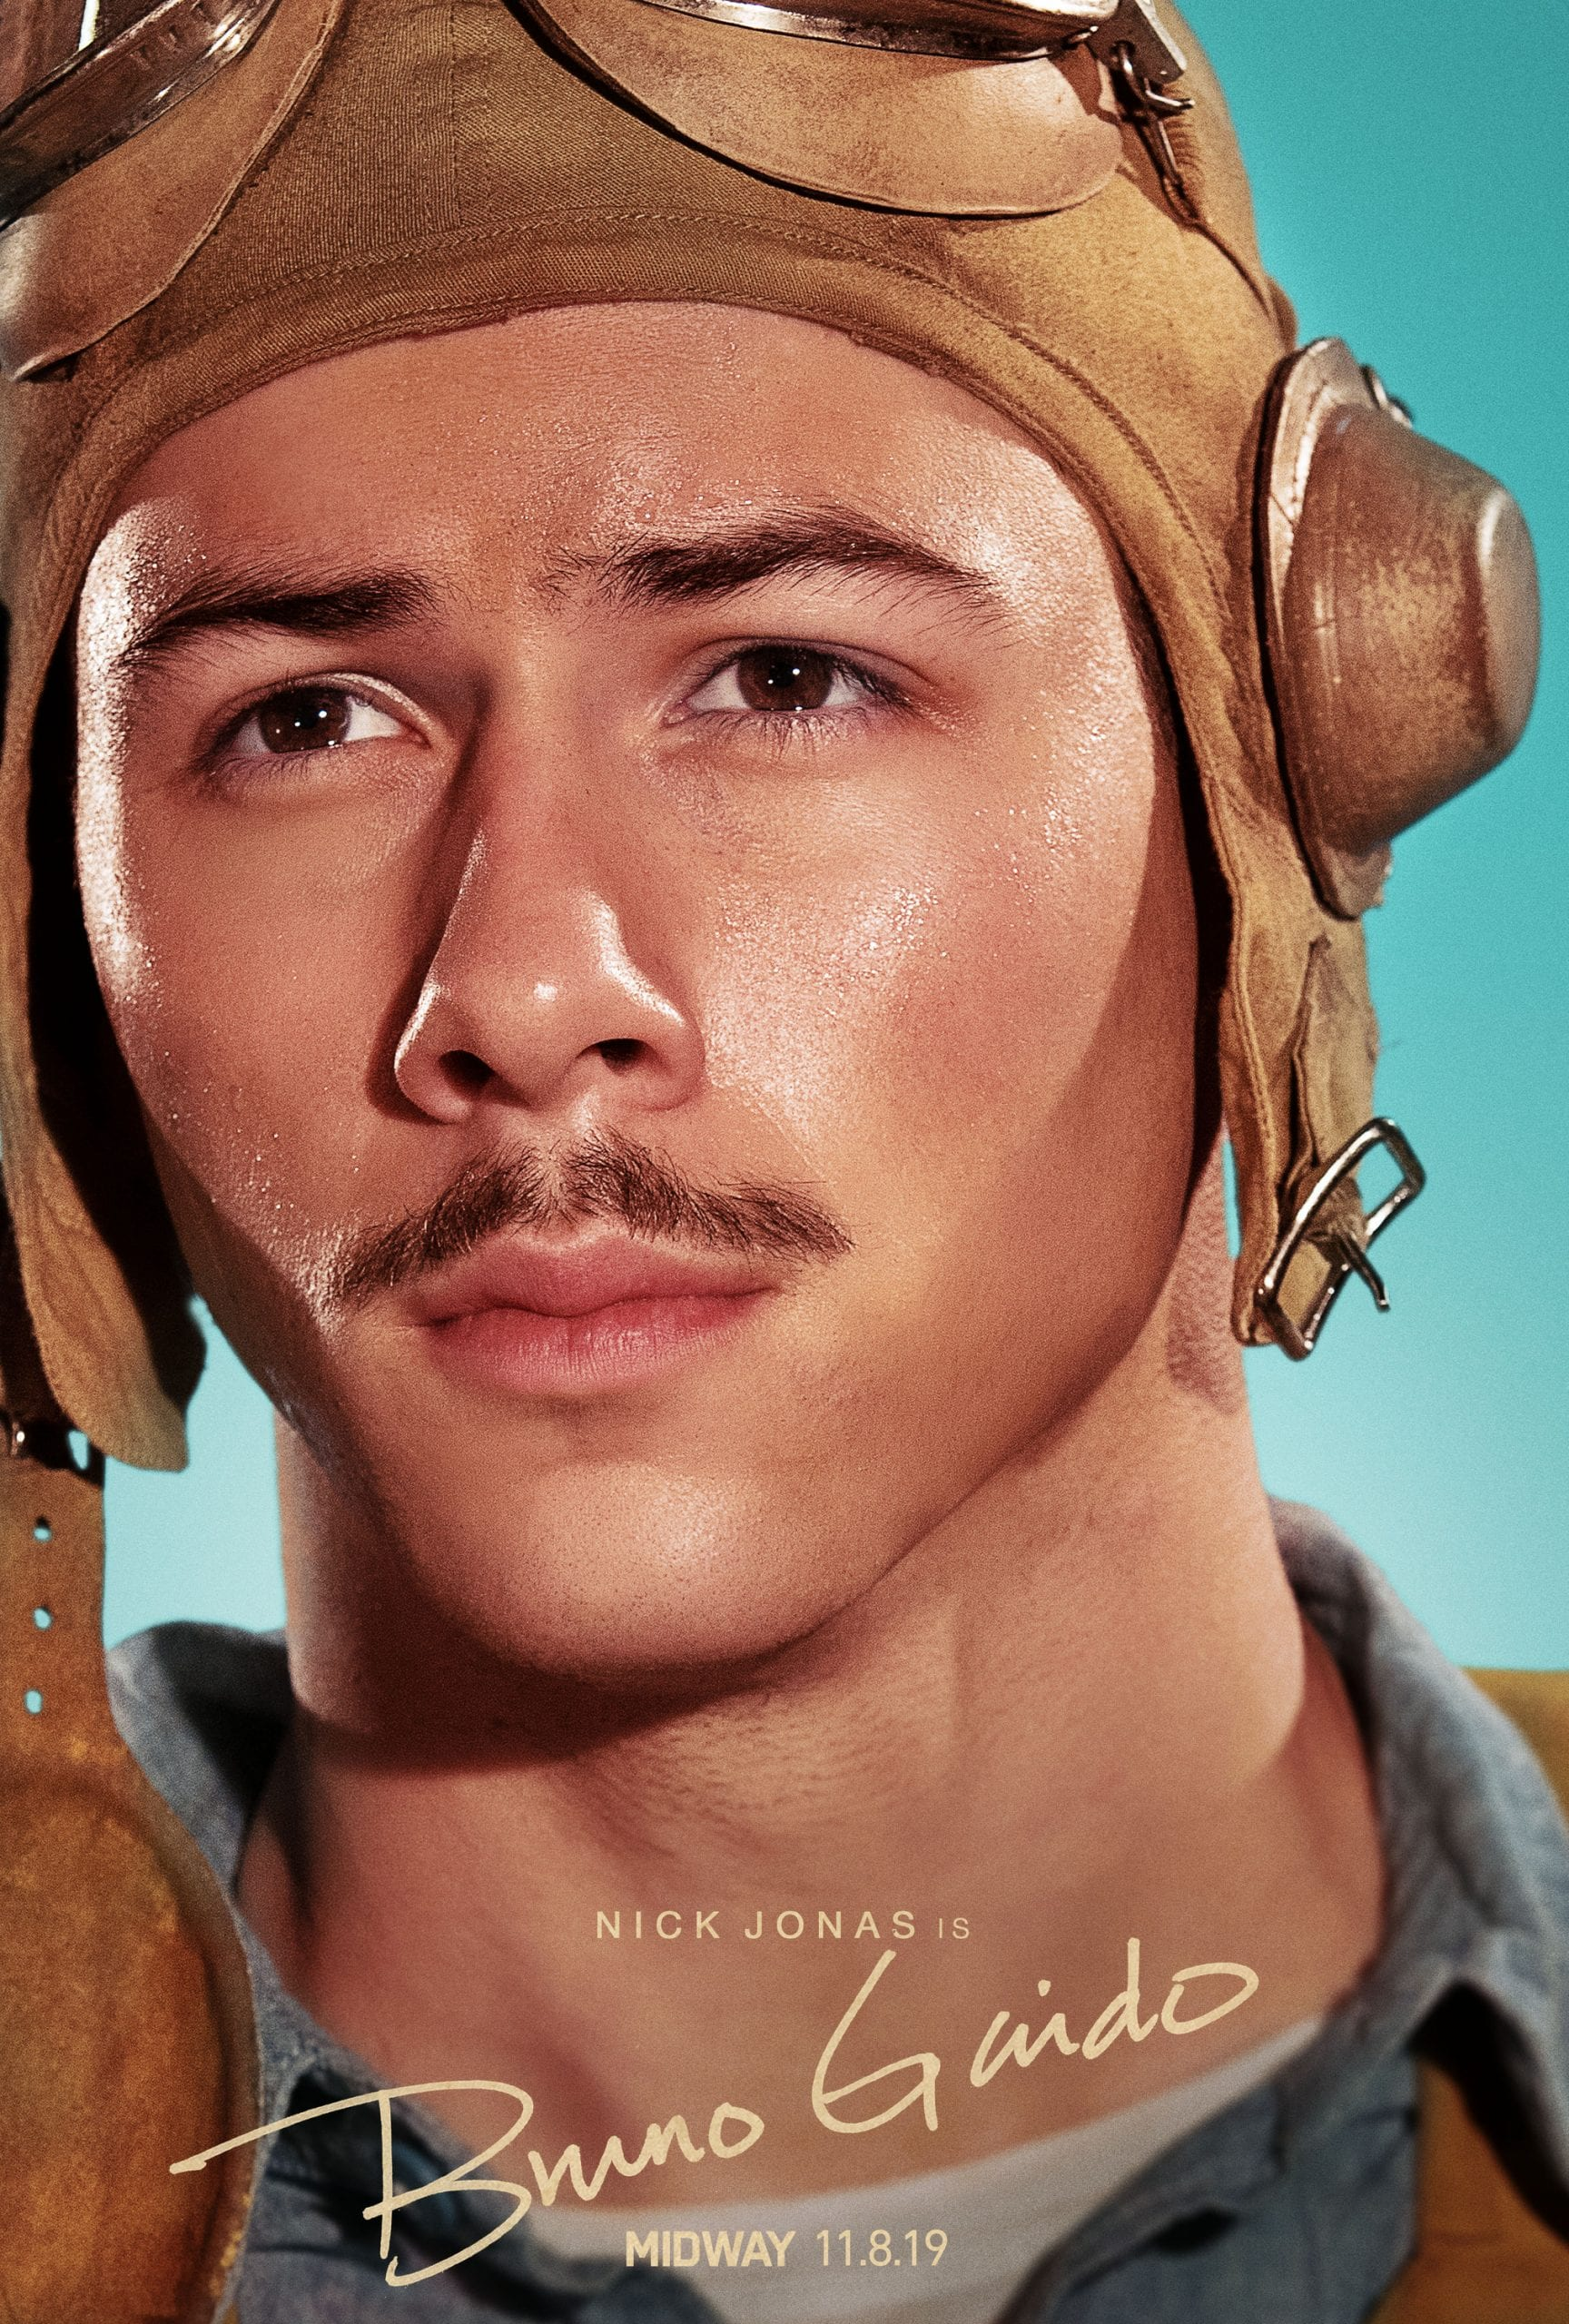 Midway Character Posters Nick Jonas as Bruno Gaido